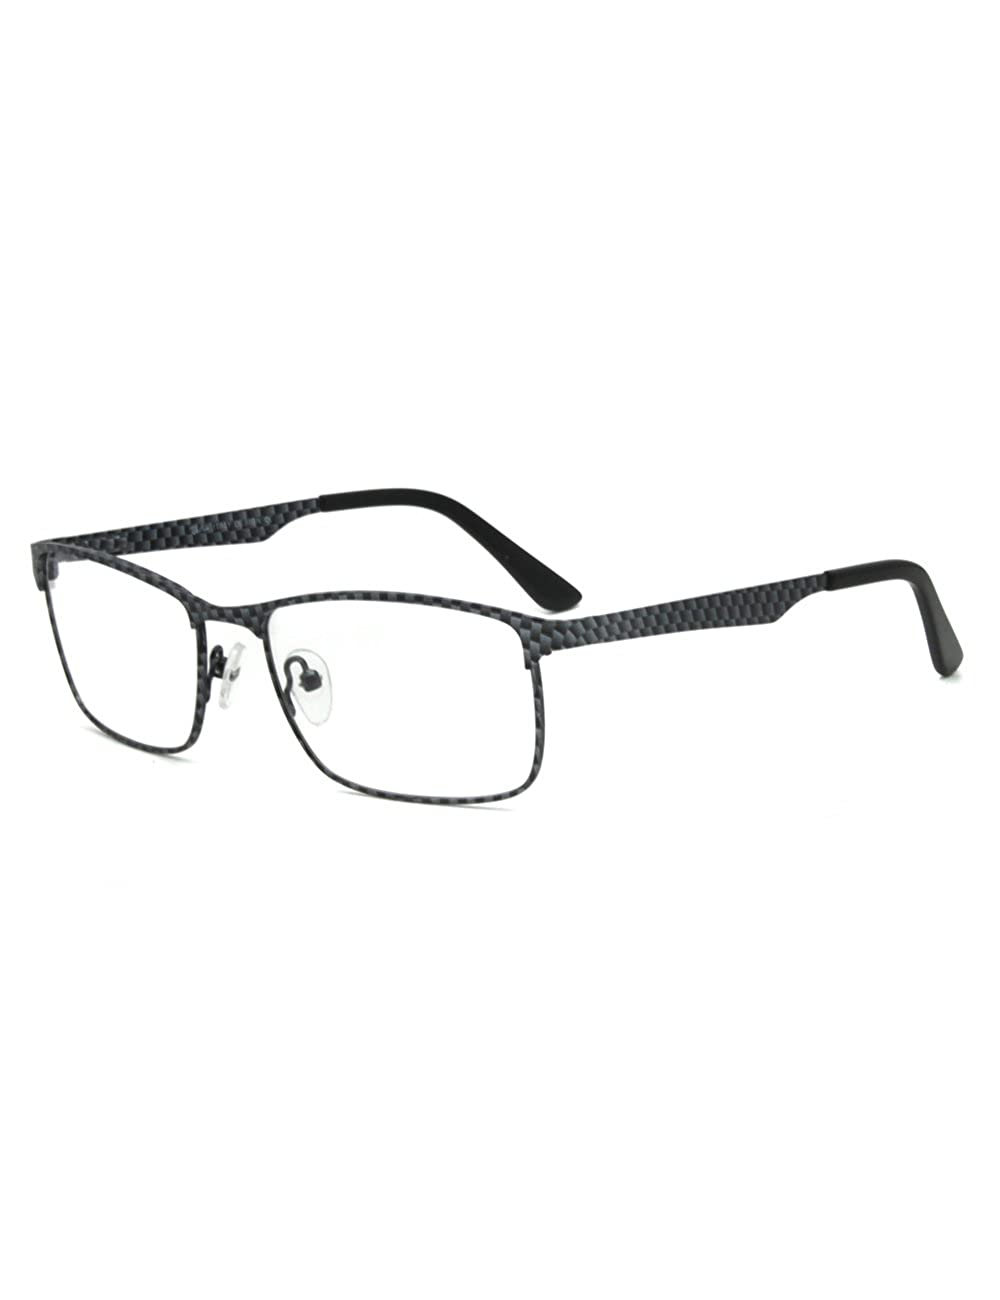 Men Vogue Carbon Fiber Pattern Metal Clear Lens Eyeglasses